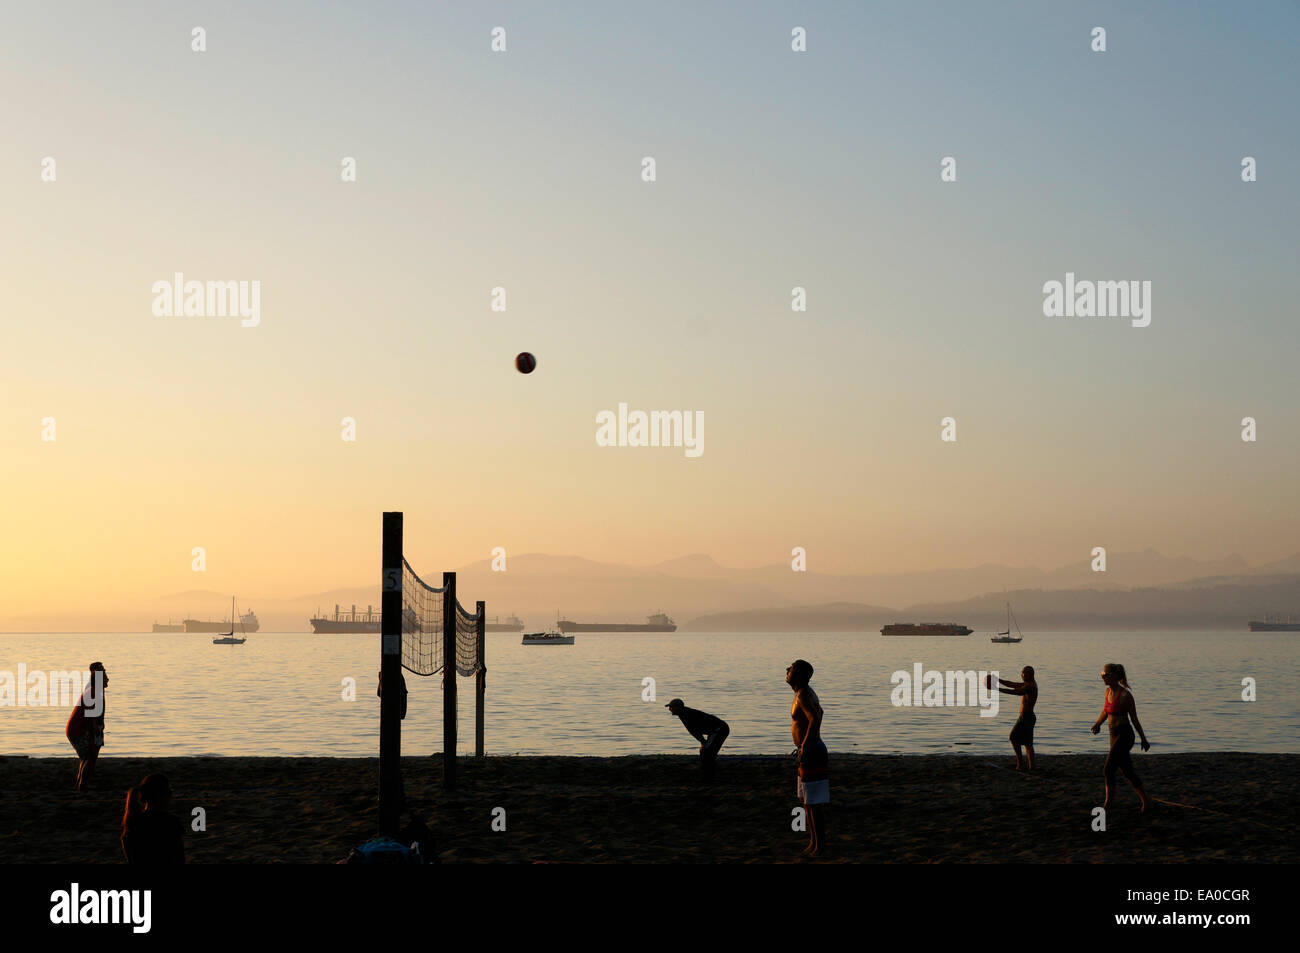 people-playing-beach-volleyball-at-sunse